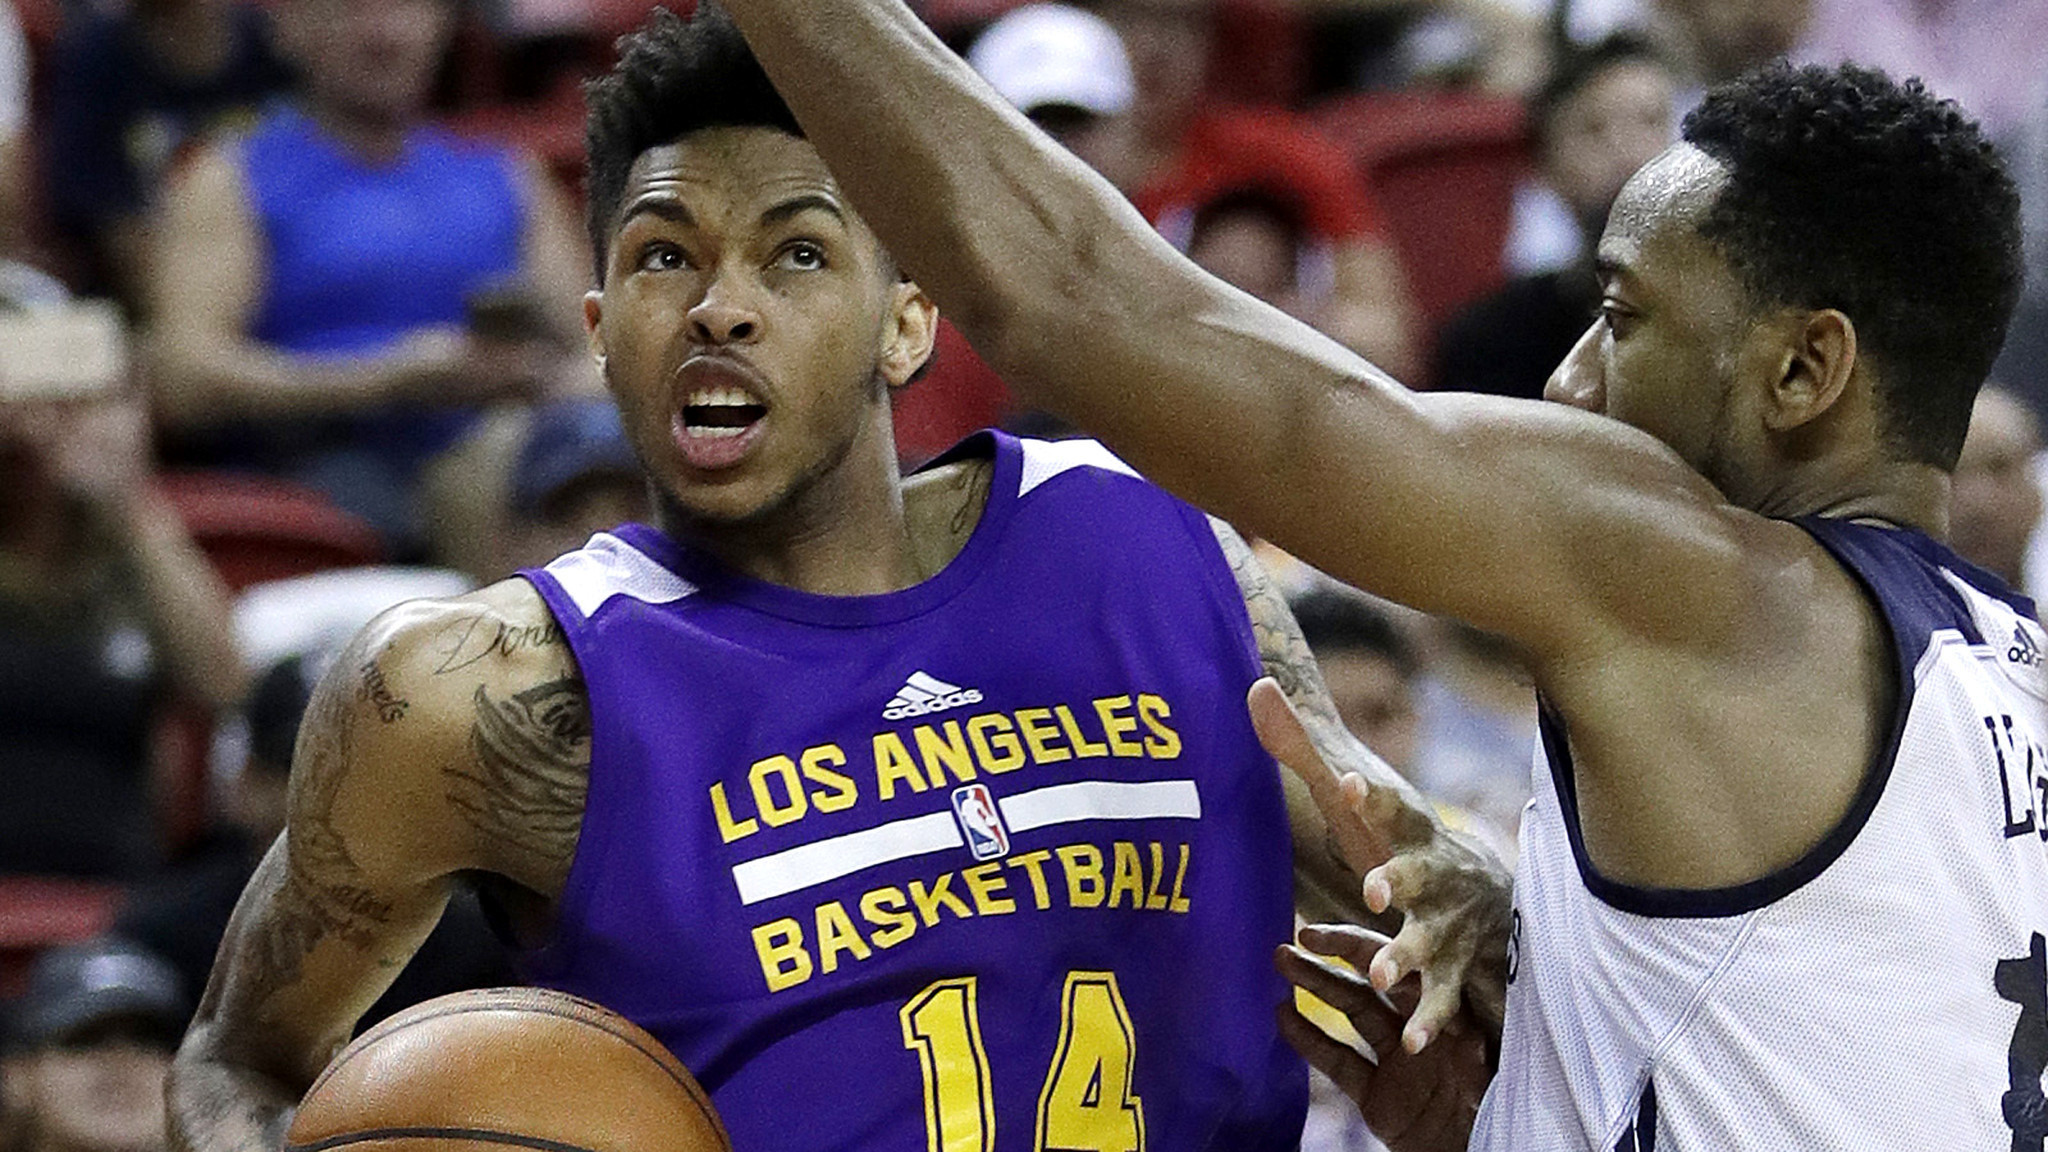 La-sp-lakers-brandon-ingram-20160723-snap